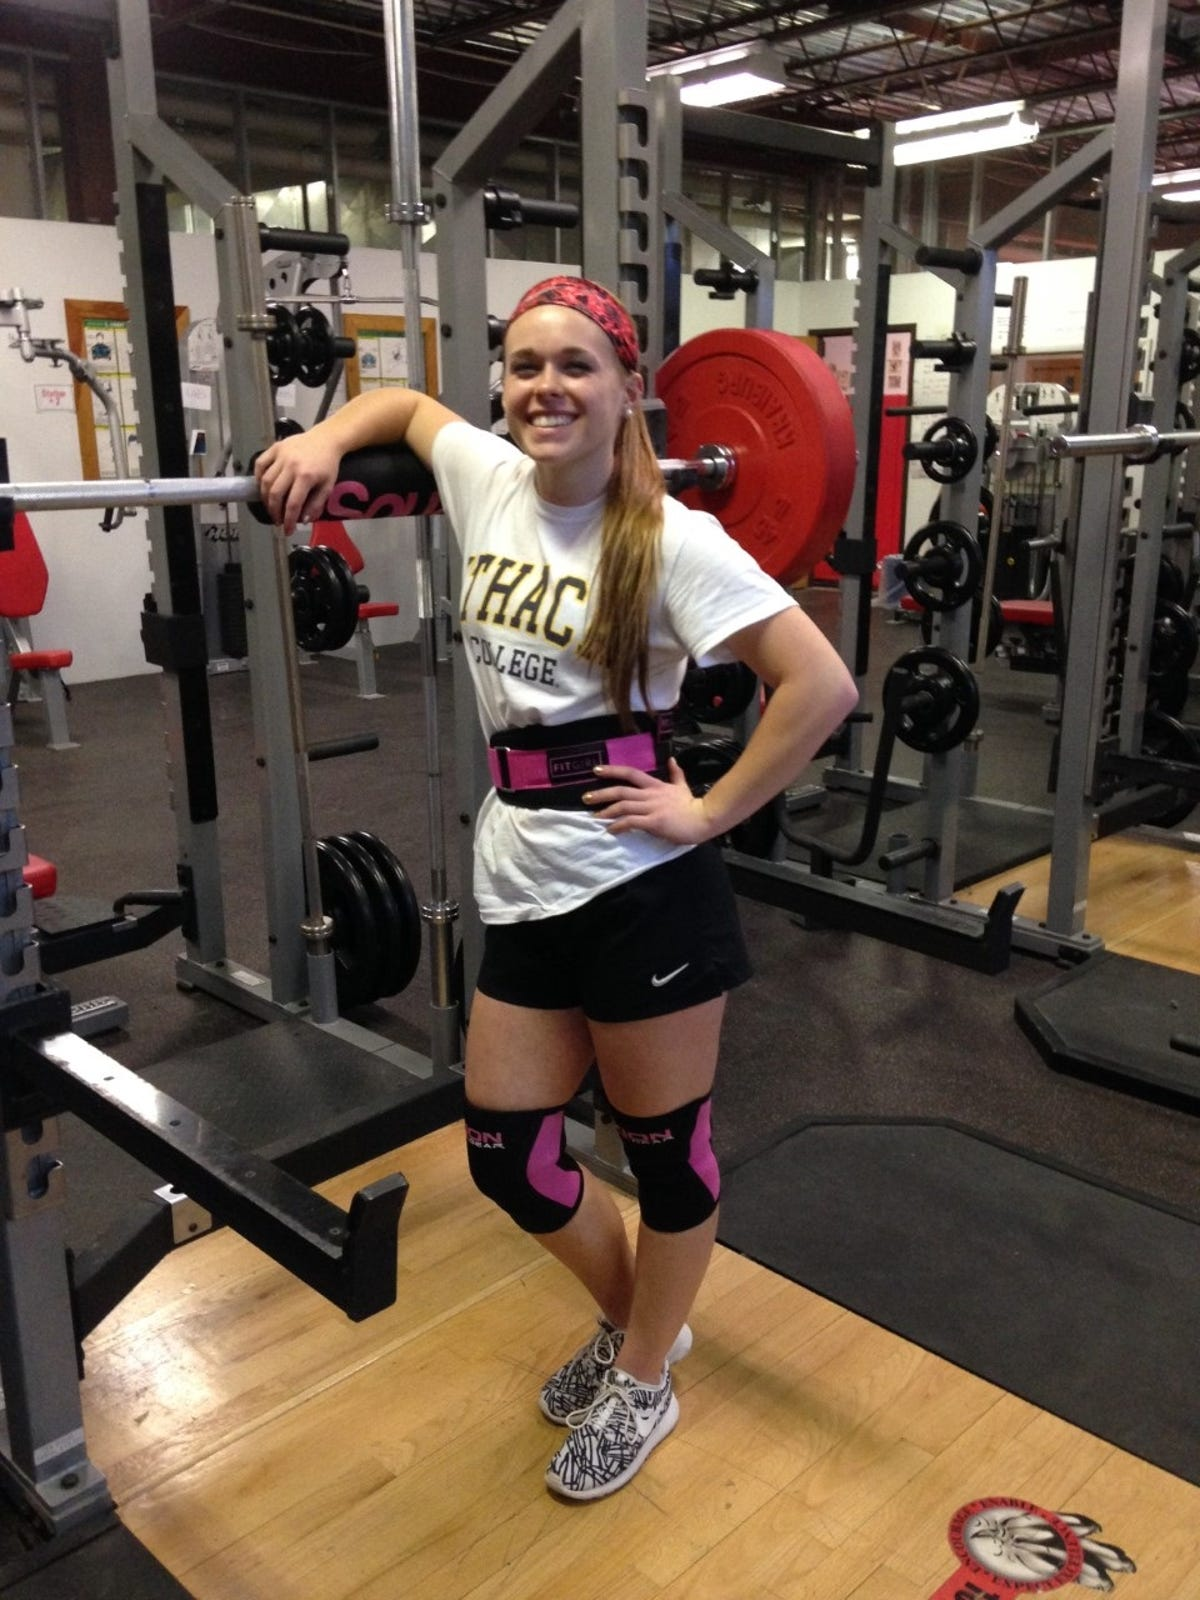 Female athlete breaks weighlifting records